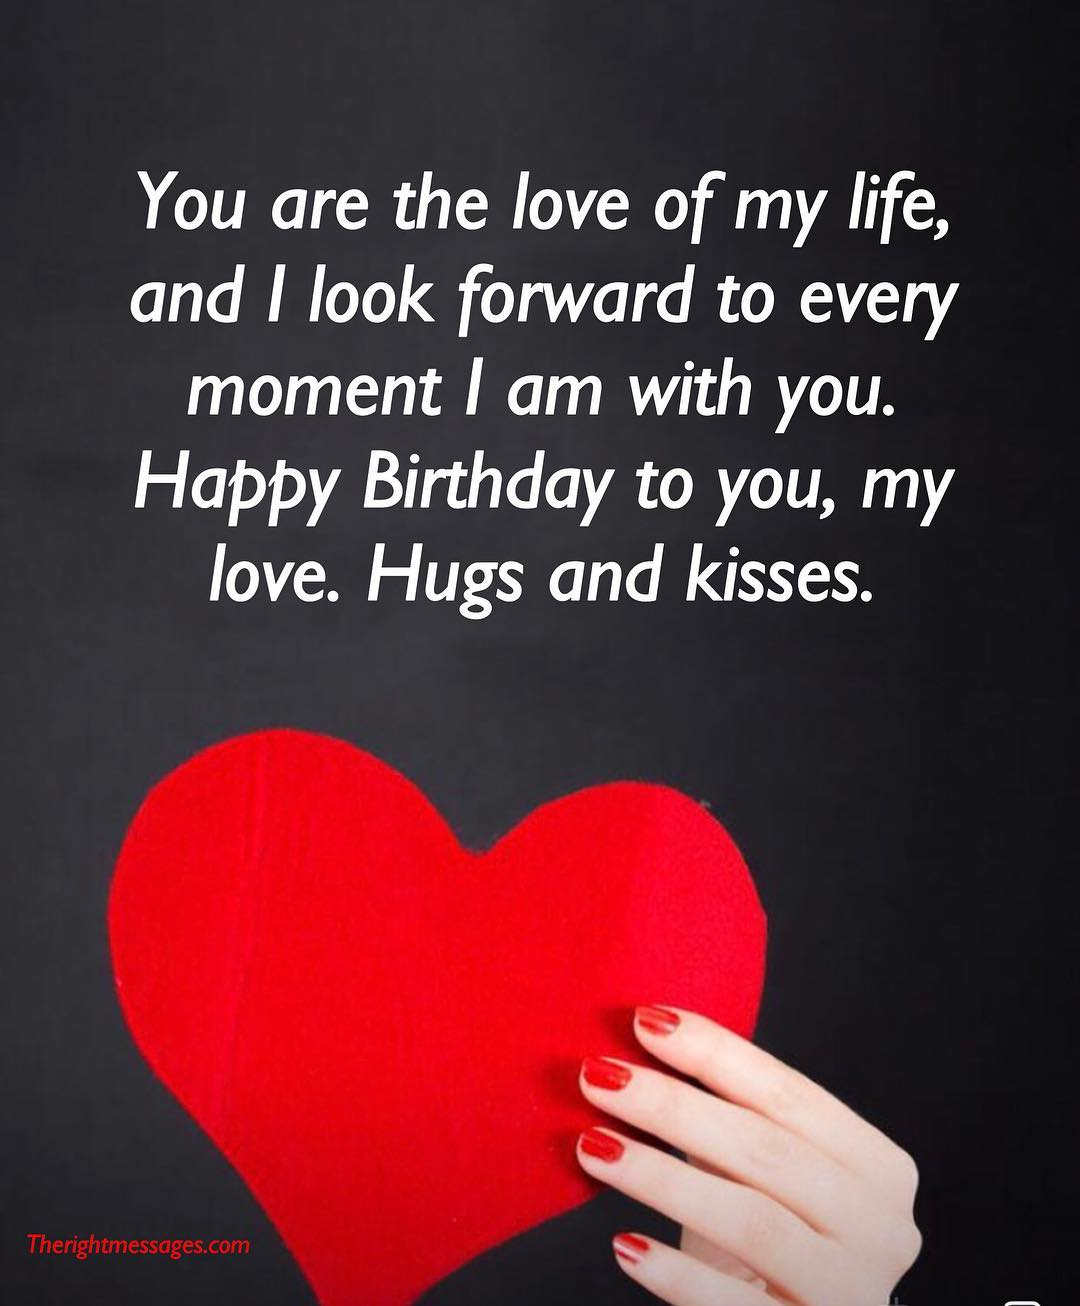 Short And Long Romantic Birthday Wishes For Boyfriend | The ...